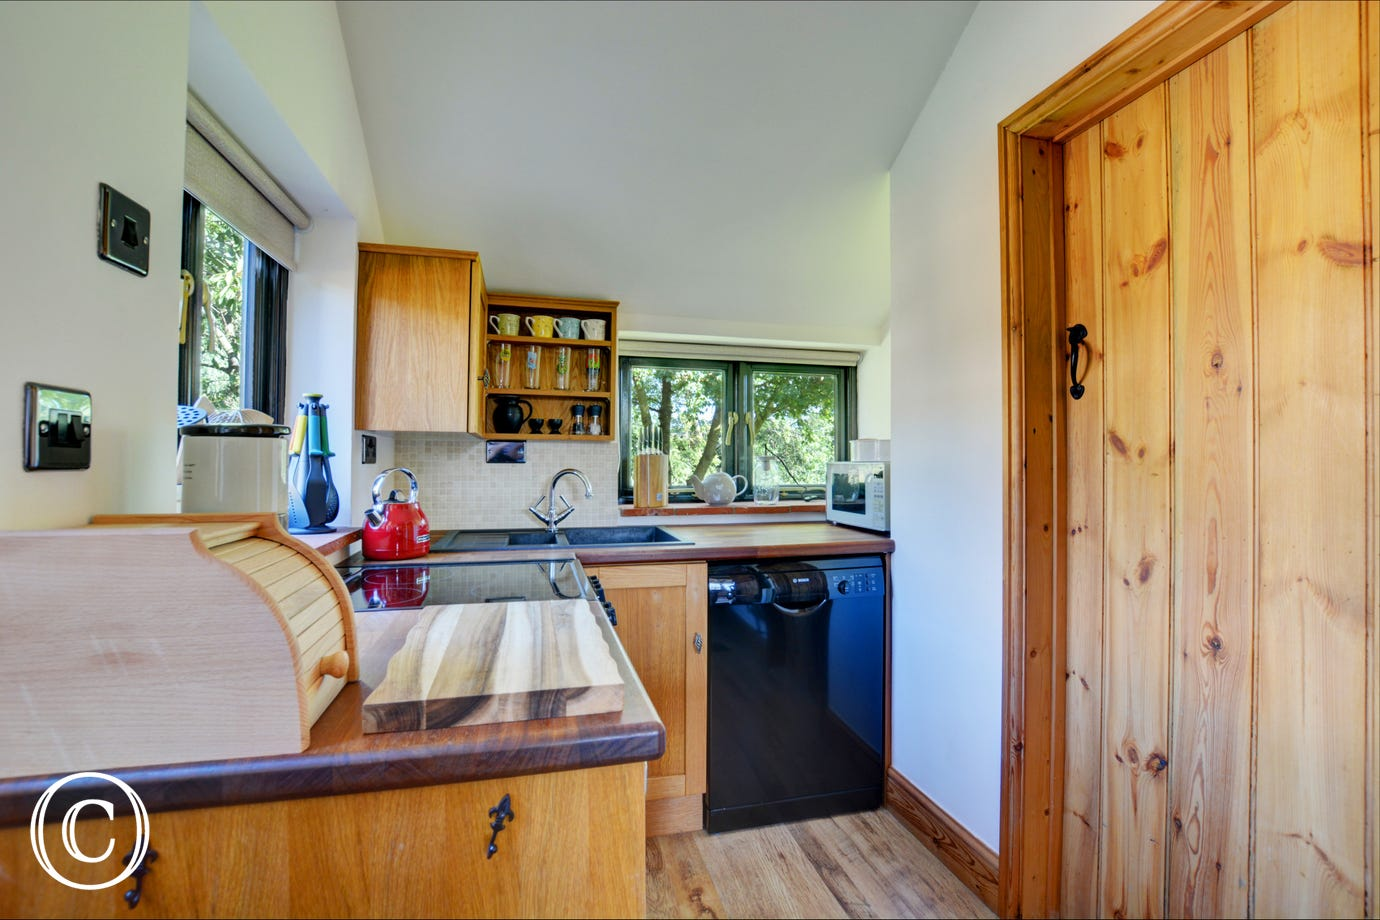 Kitchen  with electric cooker, fridge with icebox, dishwasher, microwave.